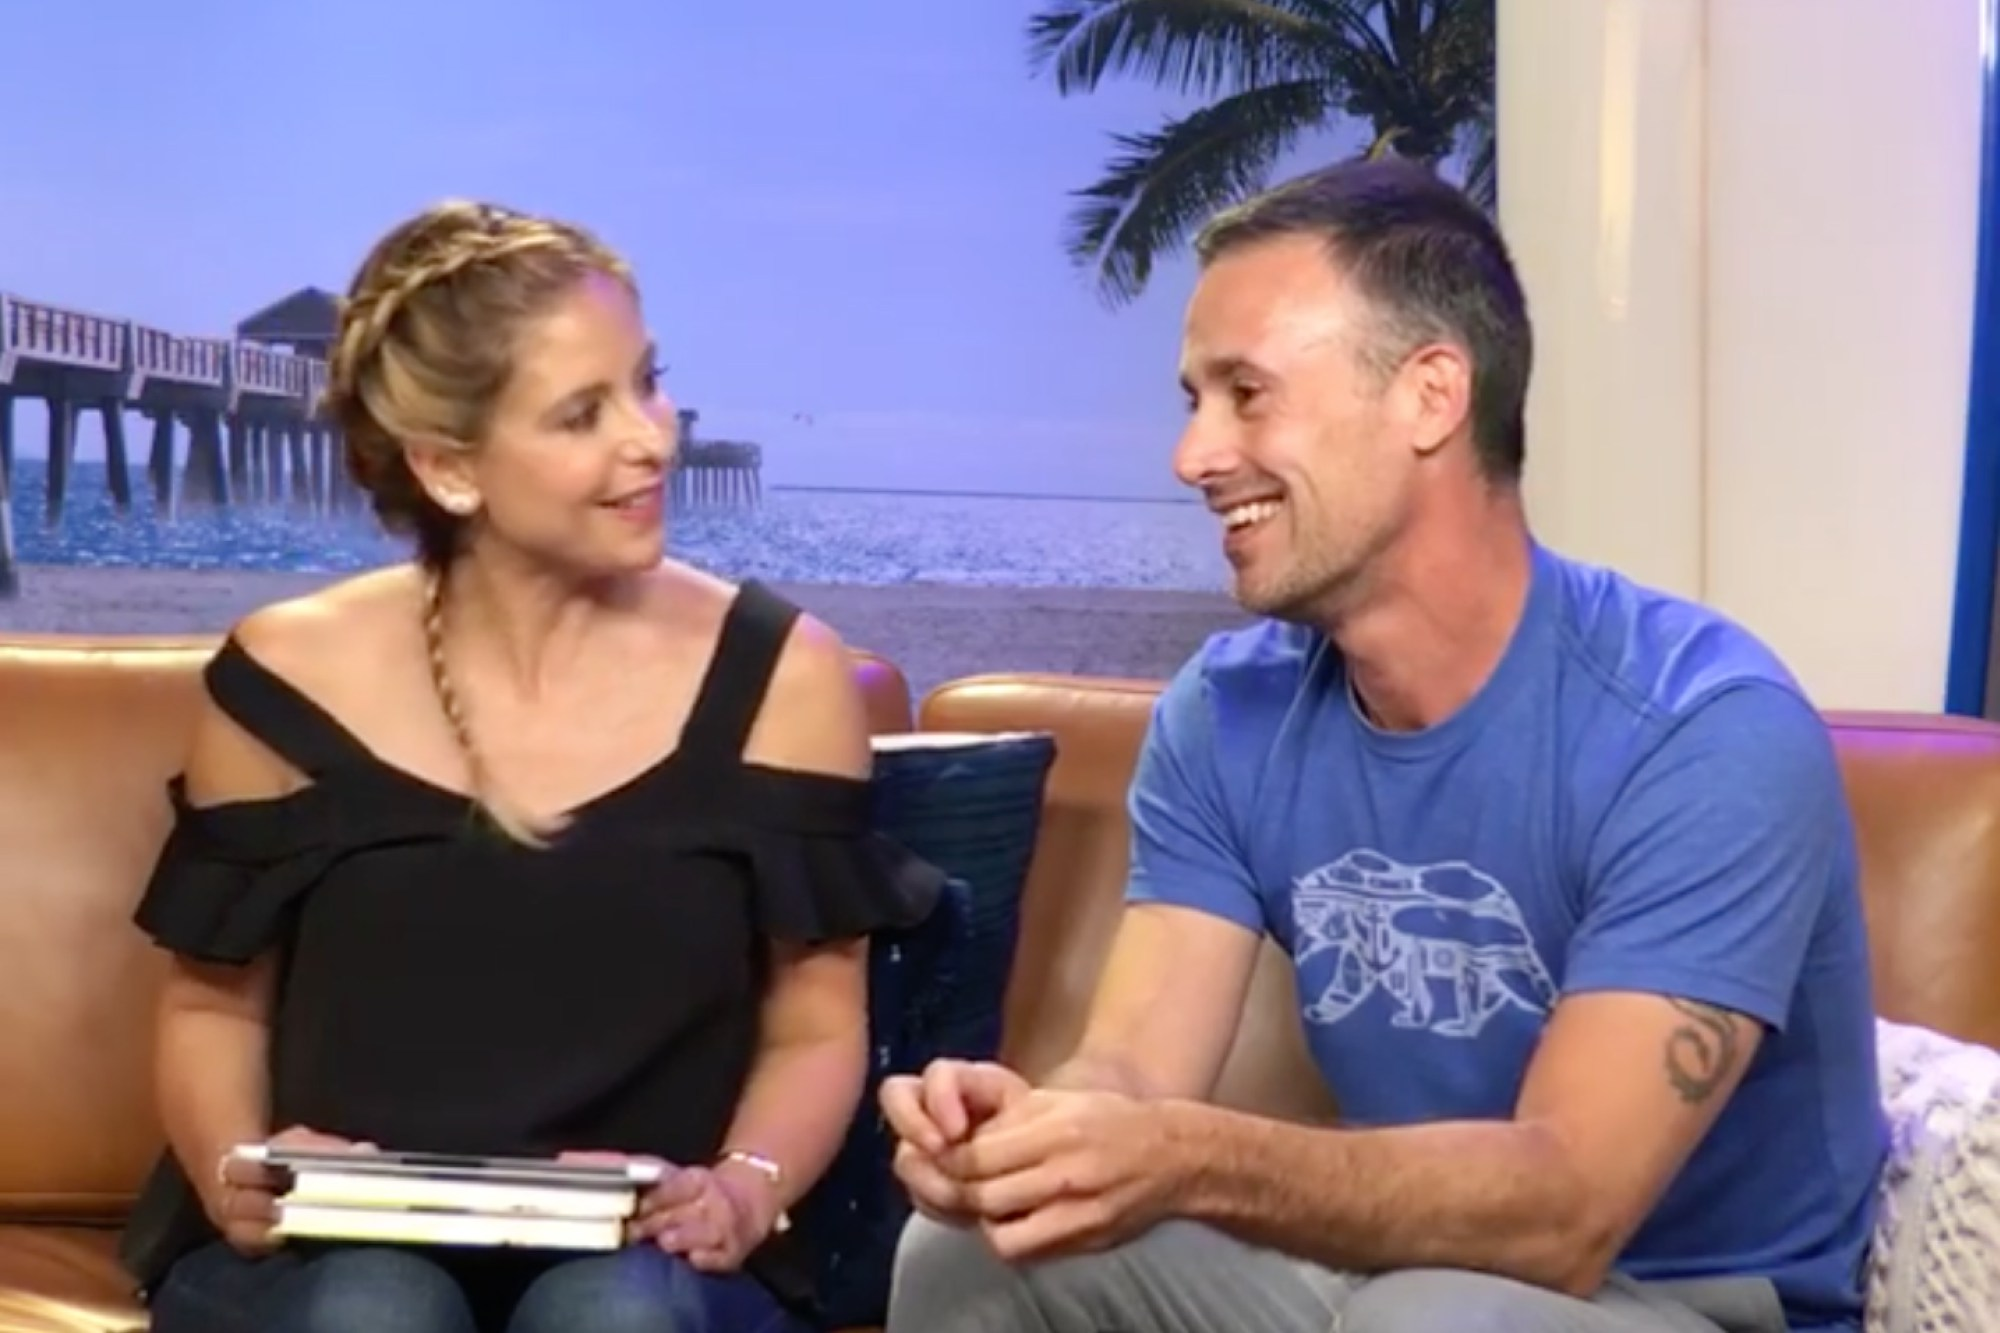 Freddie Prinze Jr. Talks About First Date With Sarah Michelle Gellar image